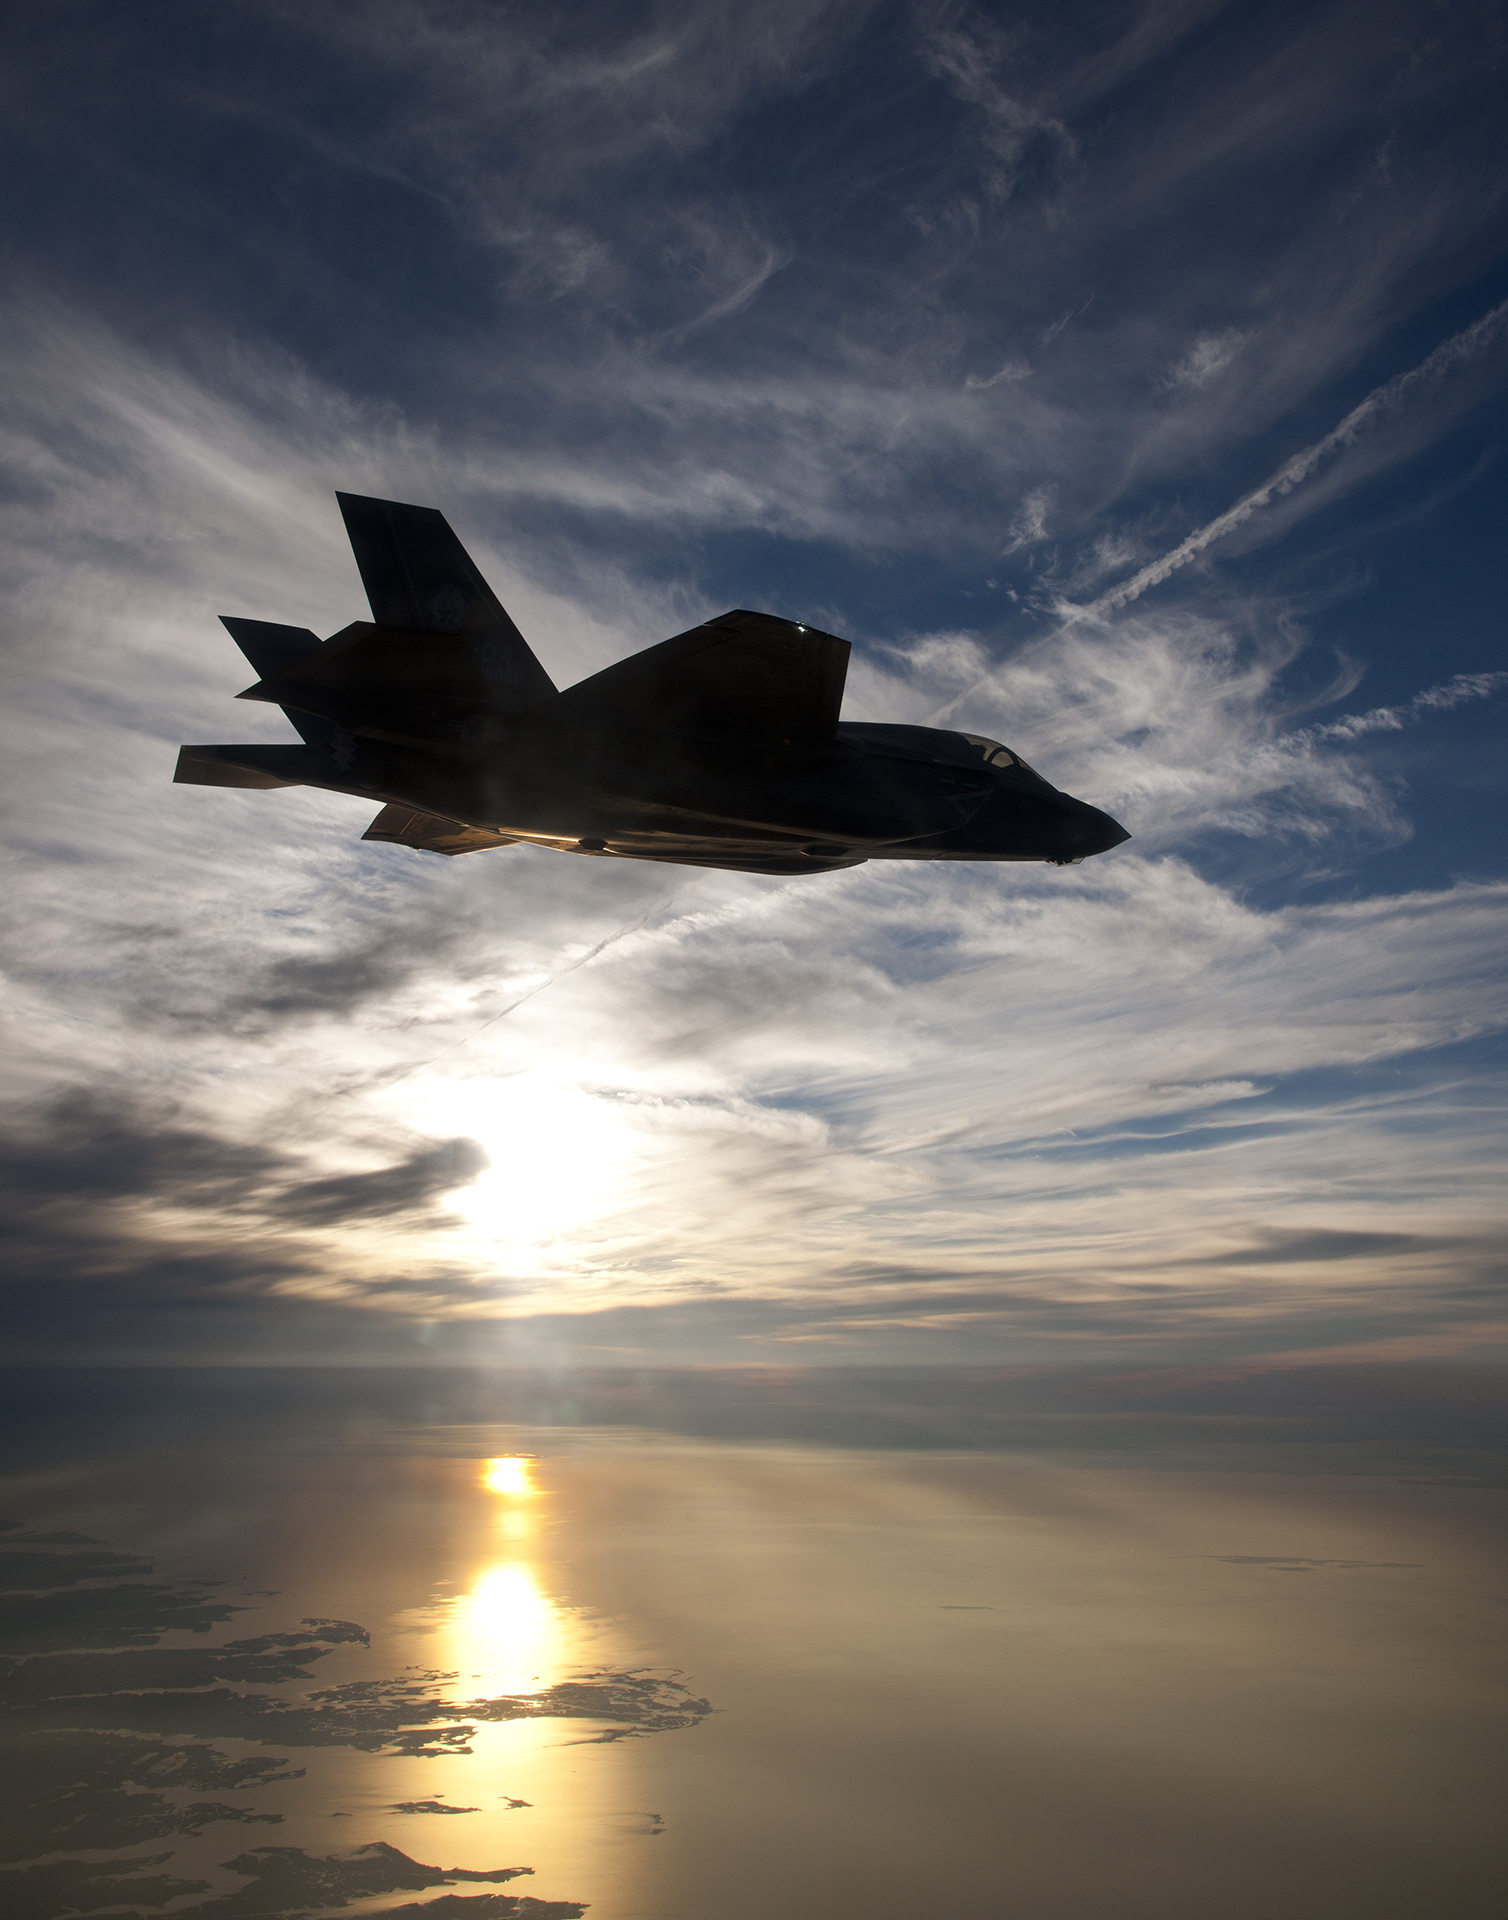 F-35B at sunset